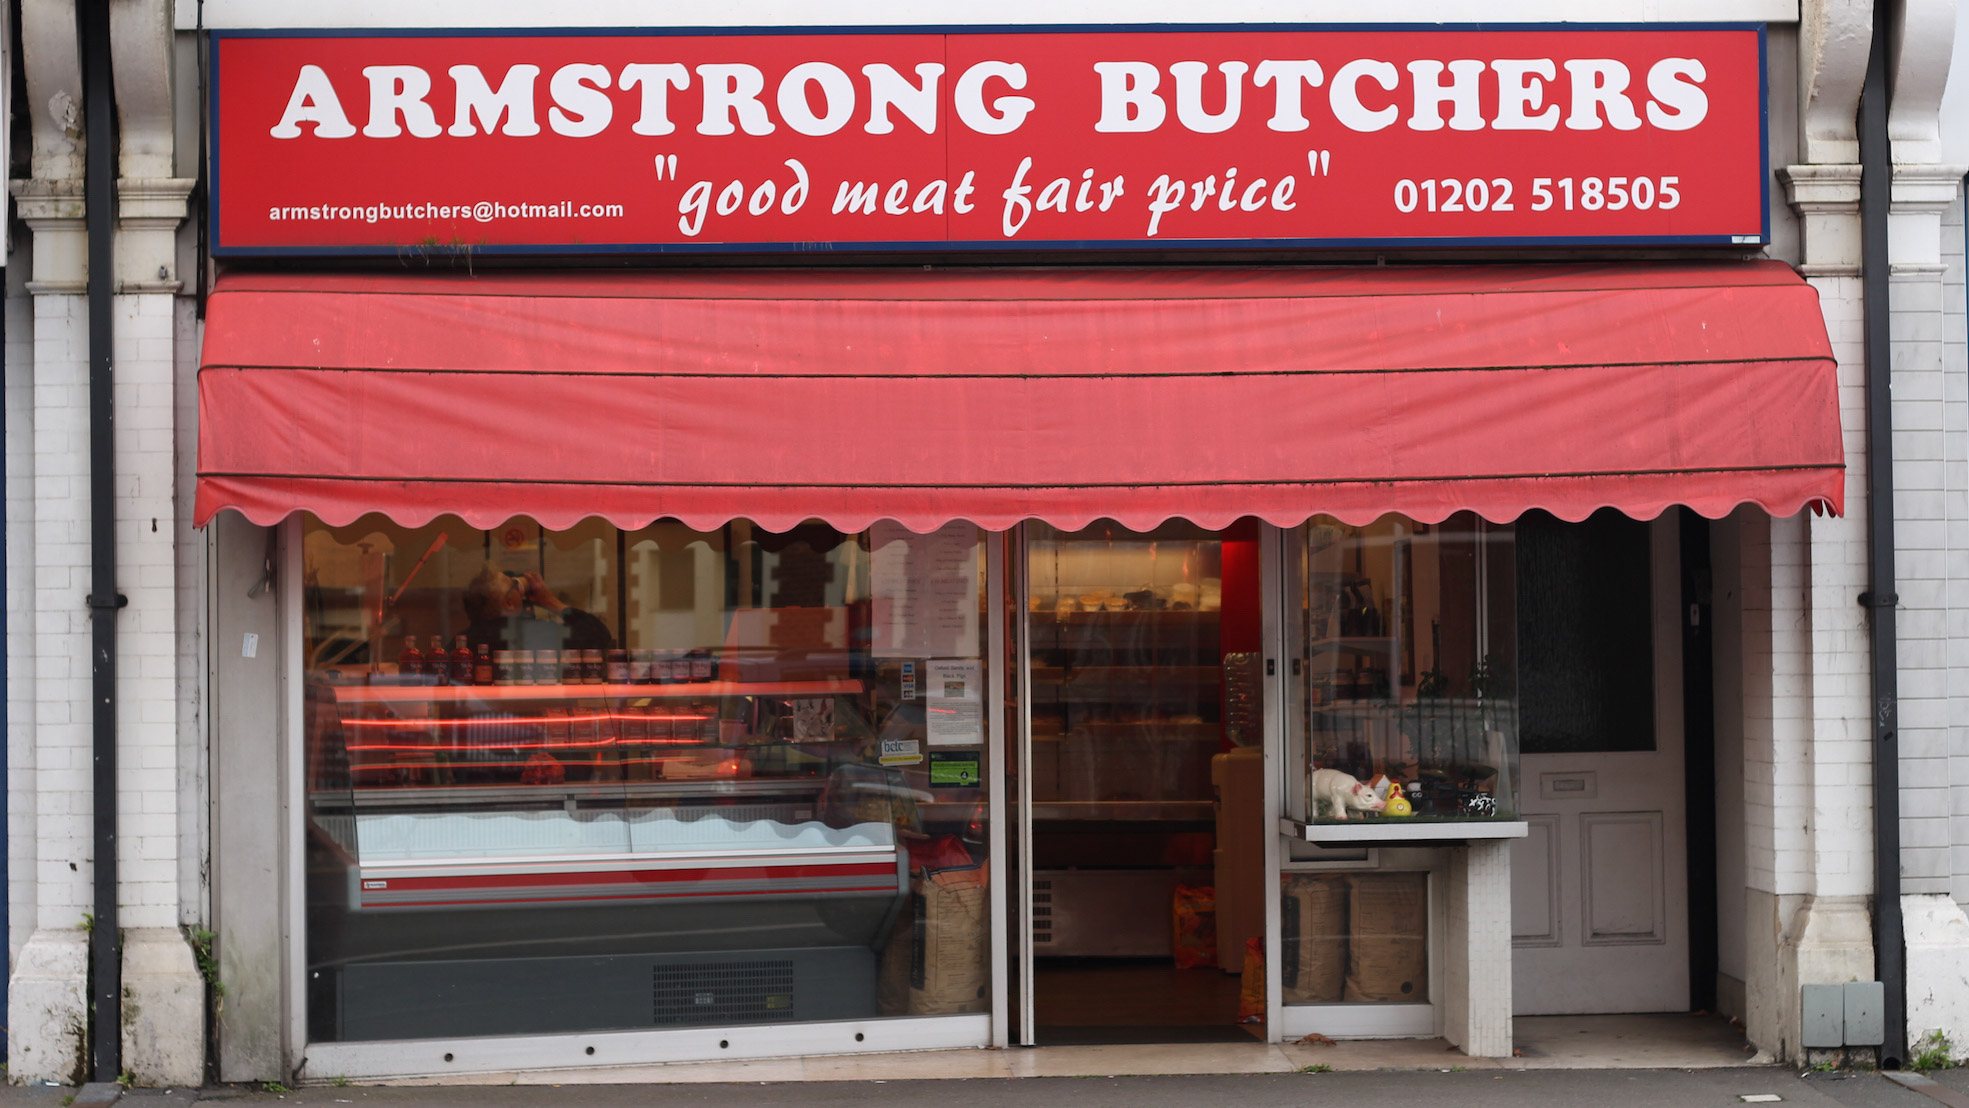 armstrong butchers